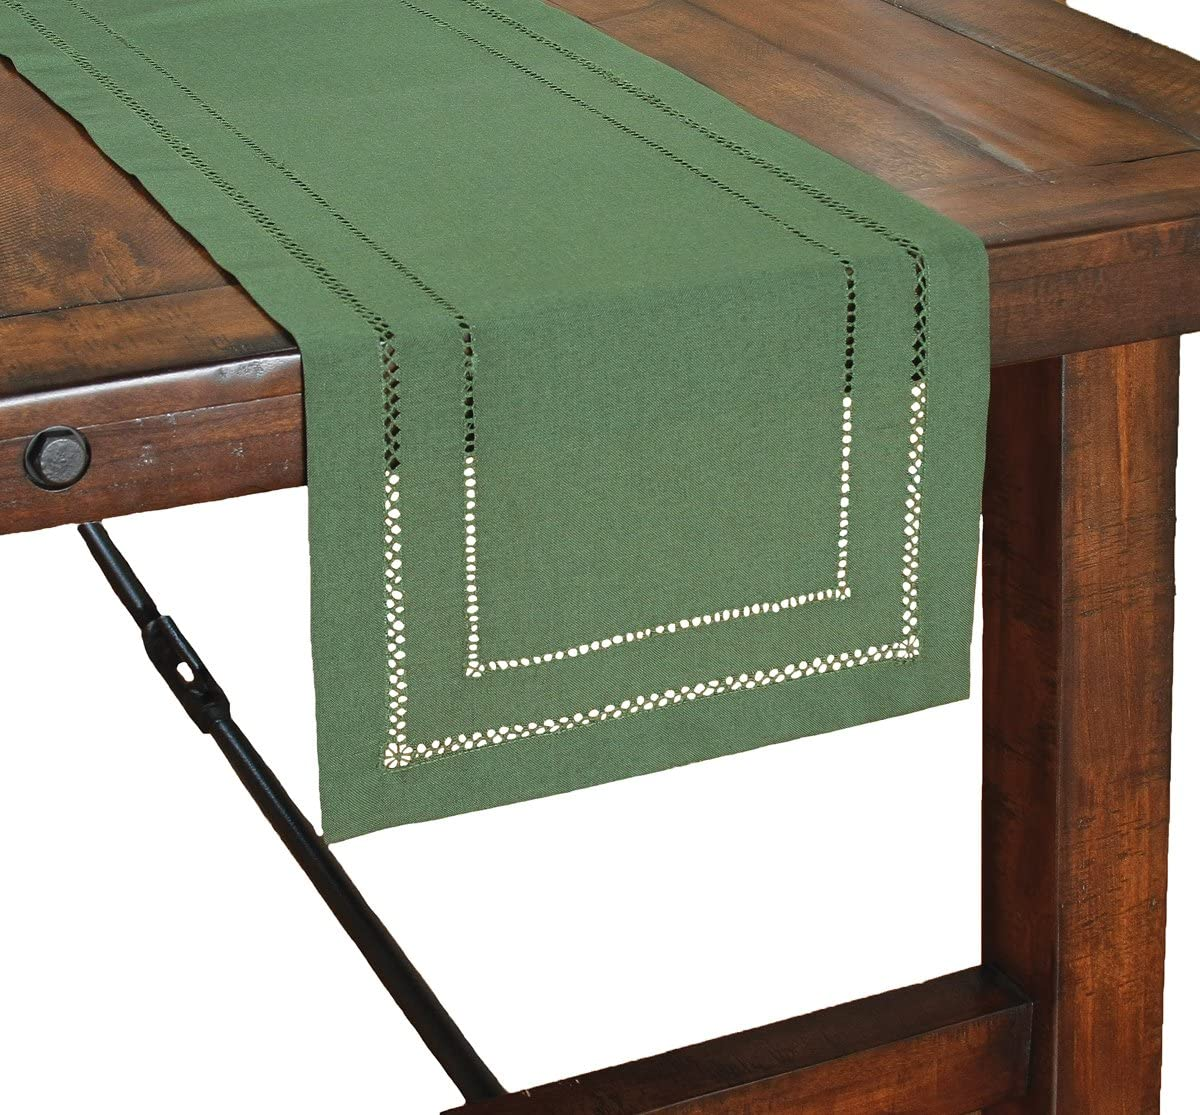 Xia Home Fashions Surprise price Double Hemstitch Easy Credence by Care Runner 14 Table